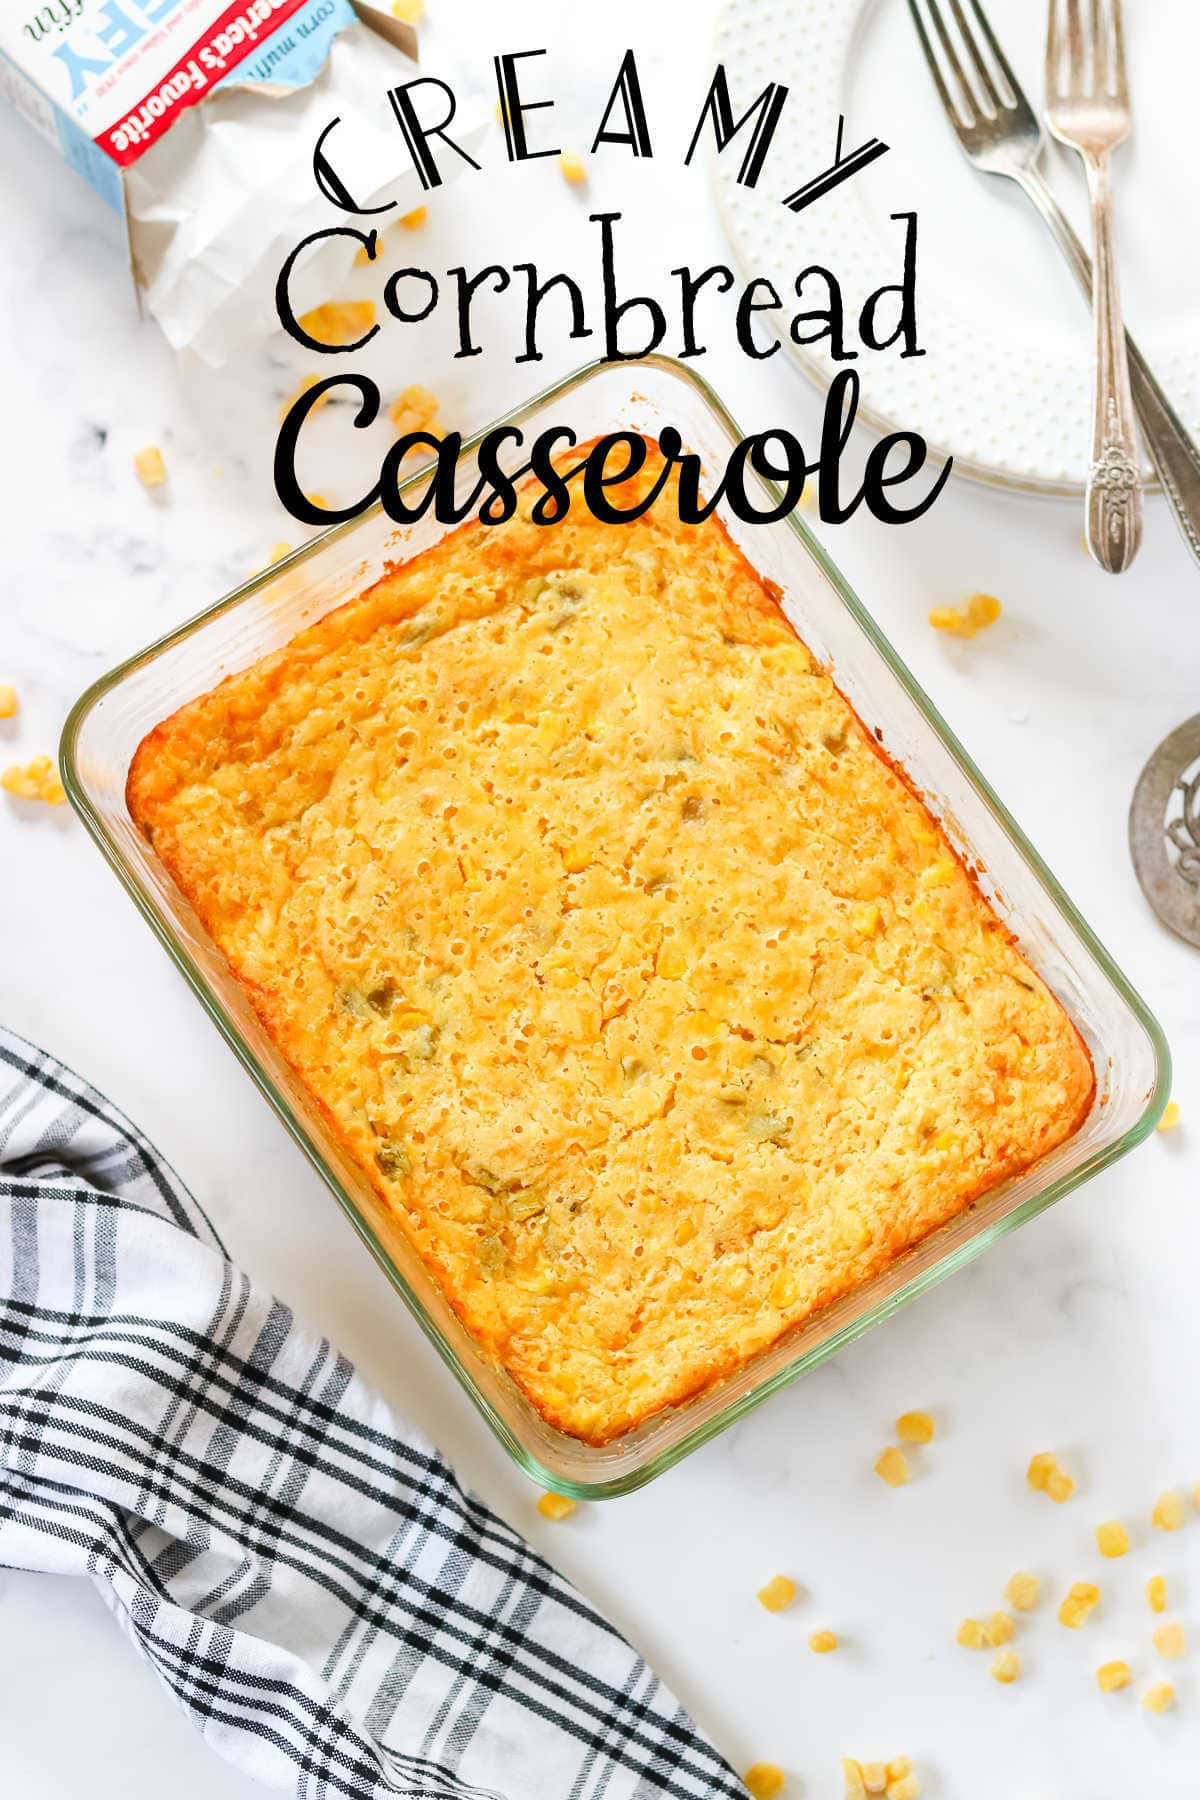 Baked cornbread casserole with title text overlay.